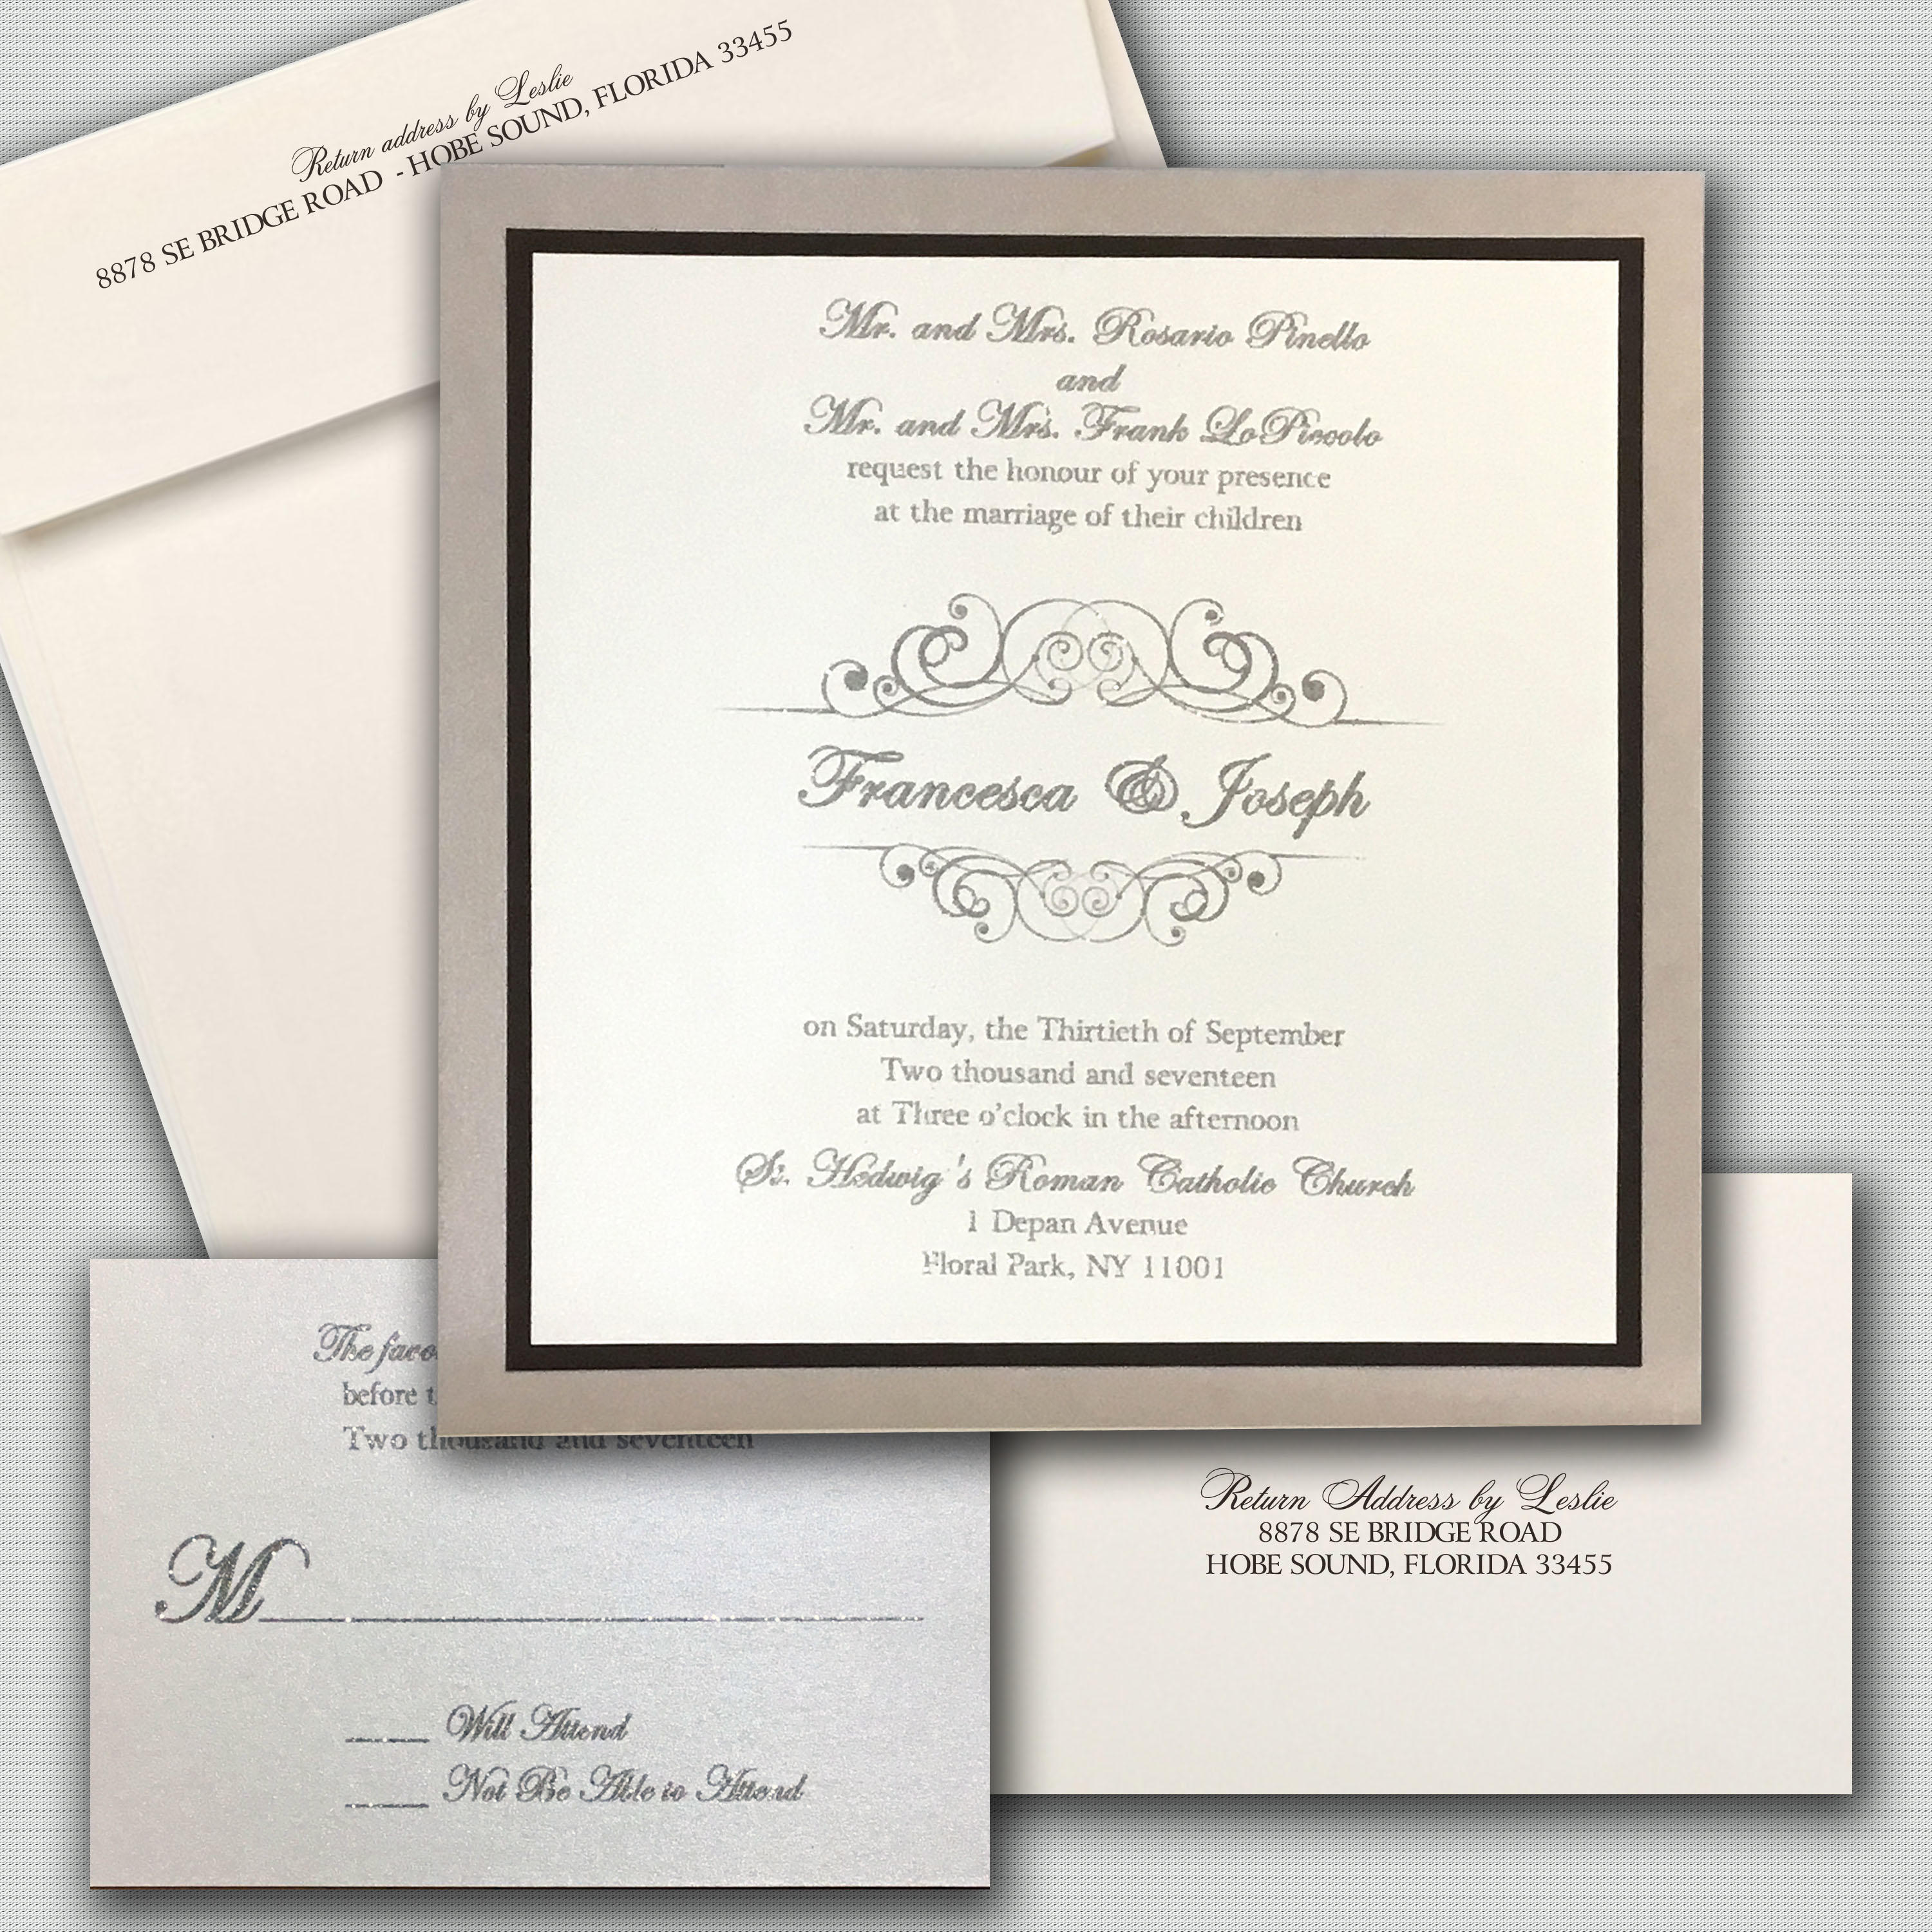 Leslie Store Wedding Invitations & Stationery image 1